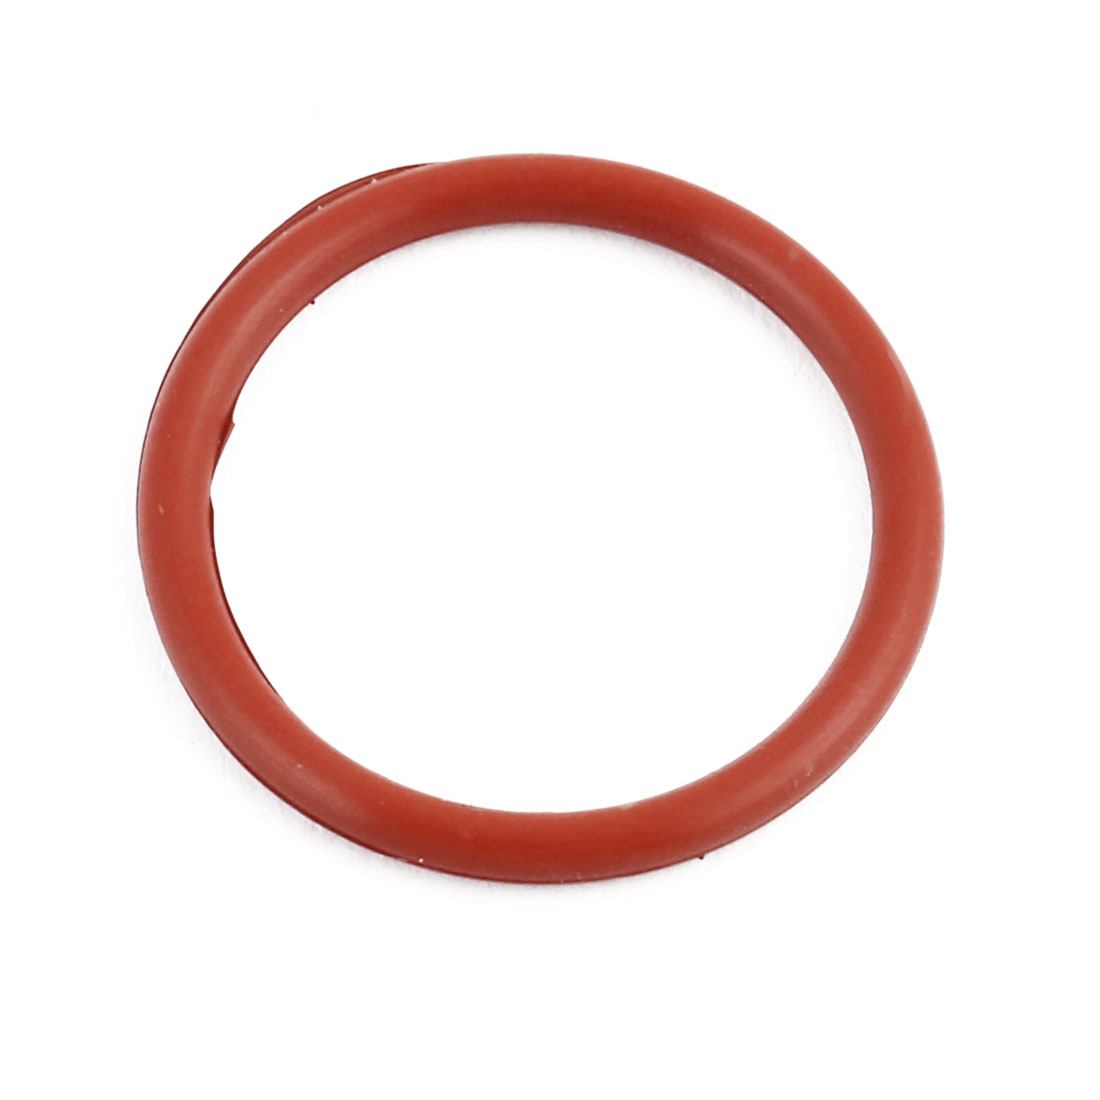 Red Round Nitrile Butadiene Rubber NBR O-Ring 22mm OD 1.9mm Width